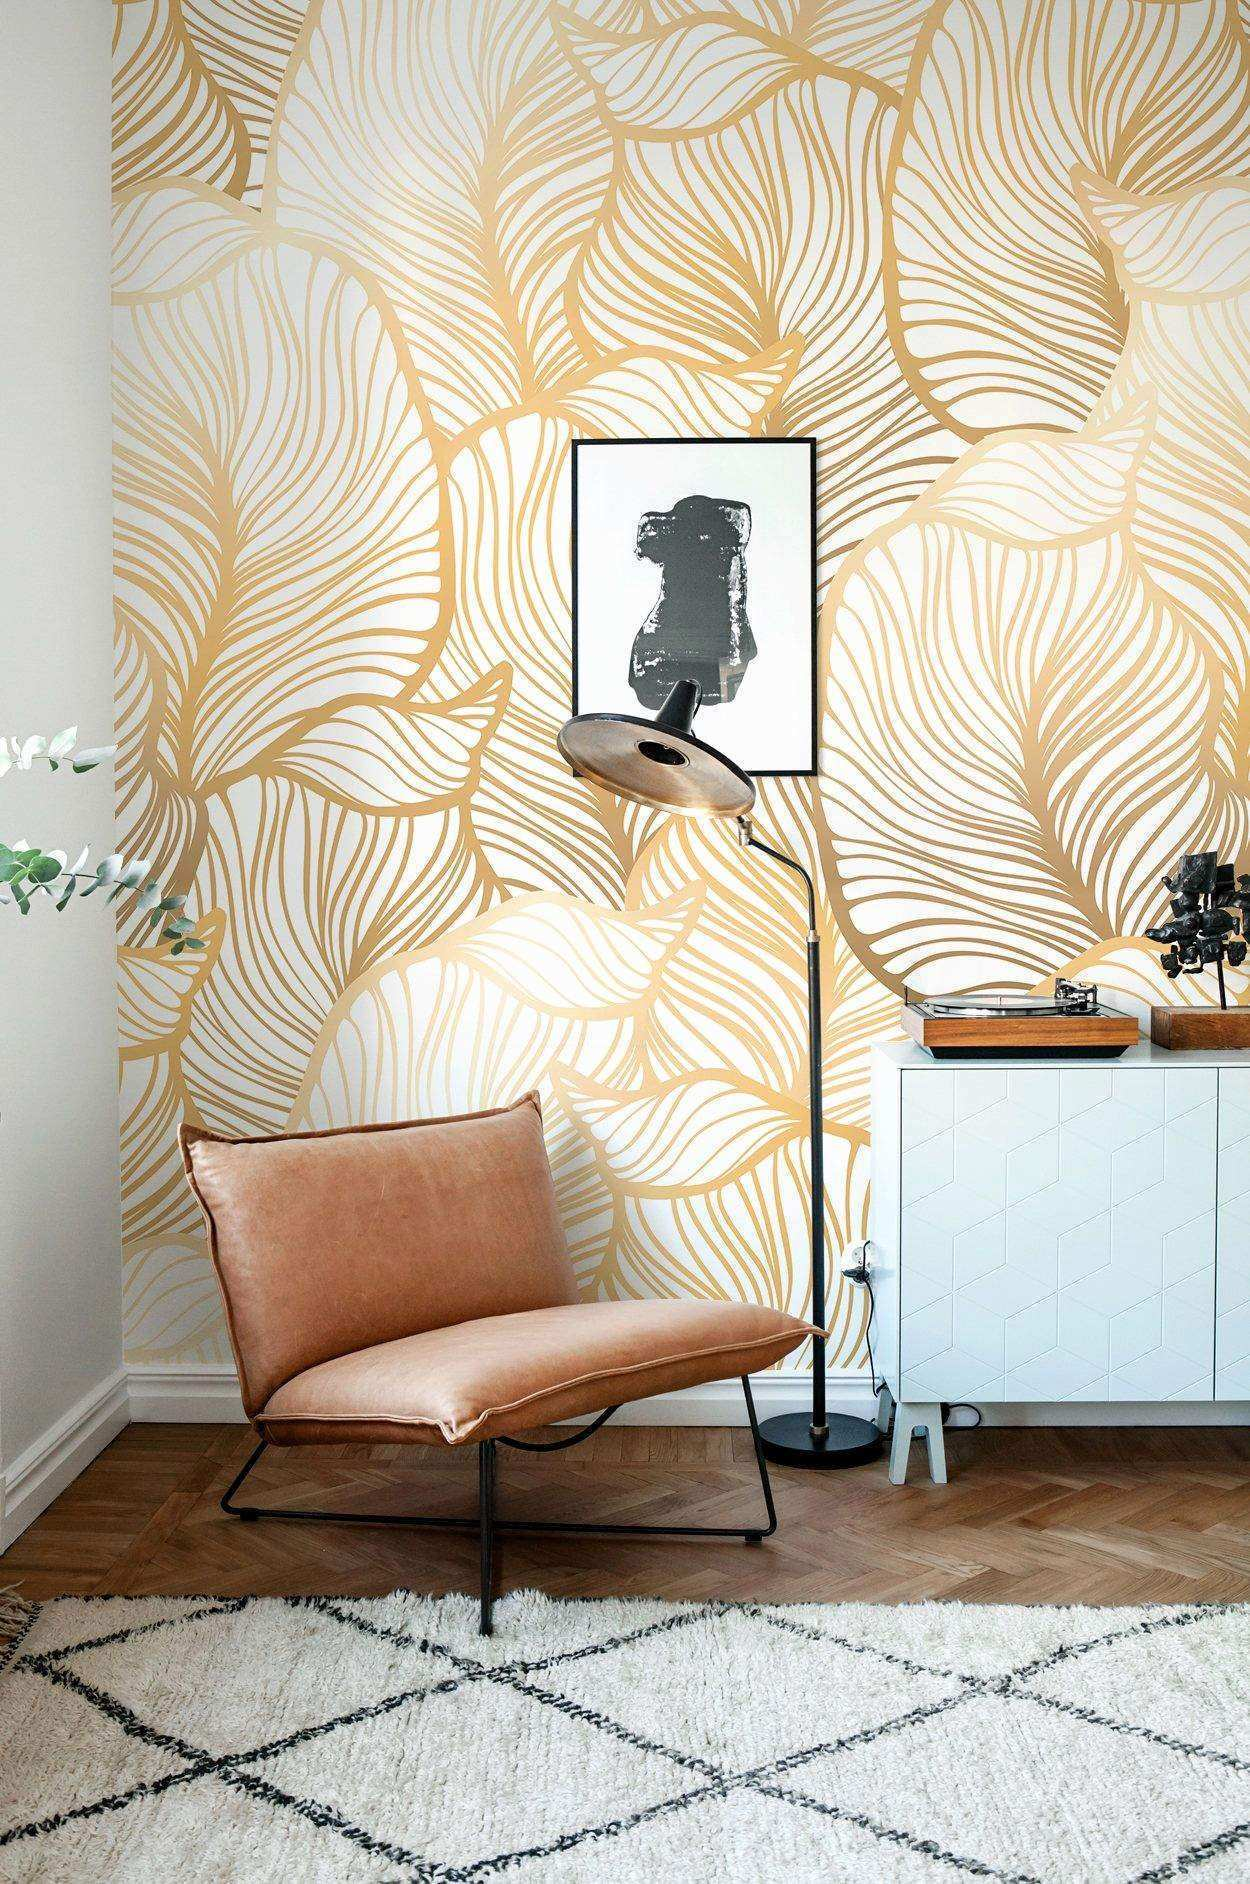 Wall Mural Ideas for Living Room Inspirational Leaf Wallpaper Exotic